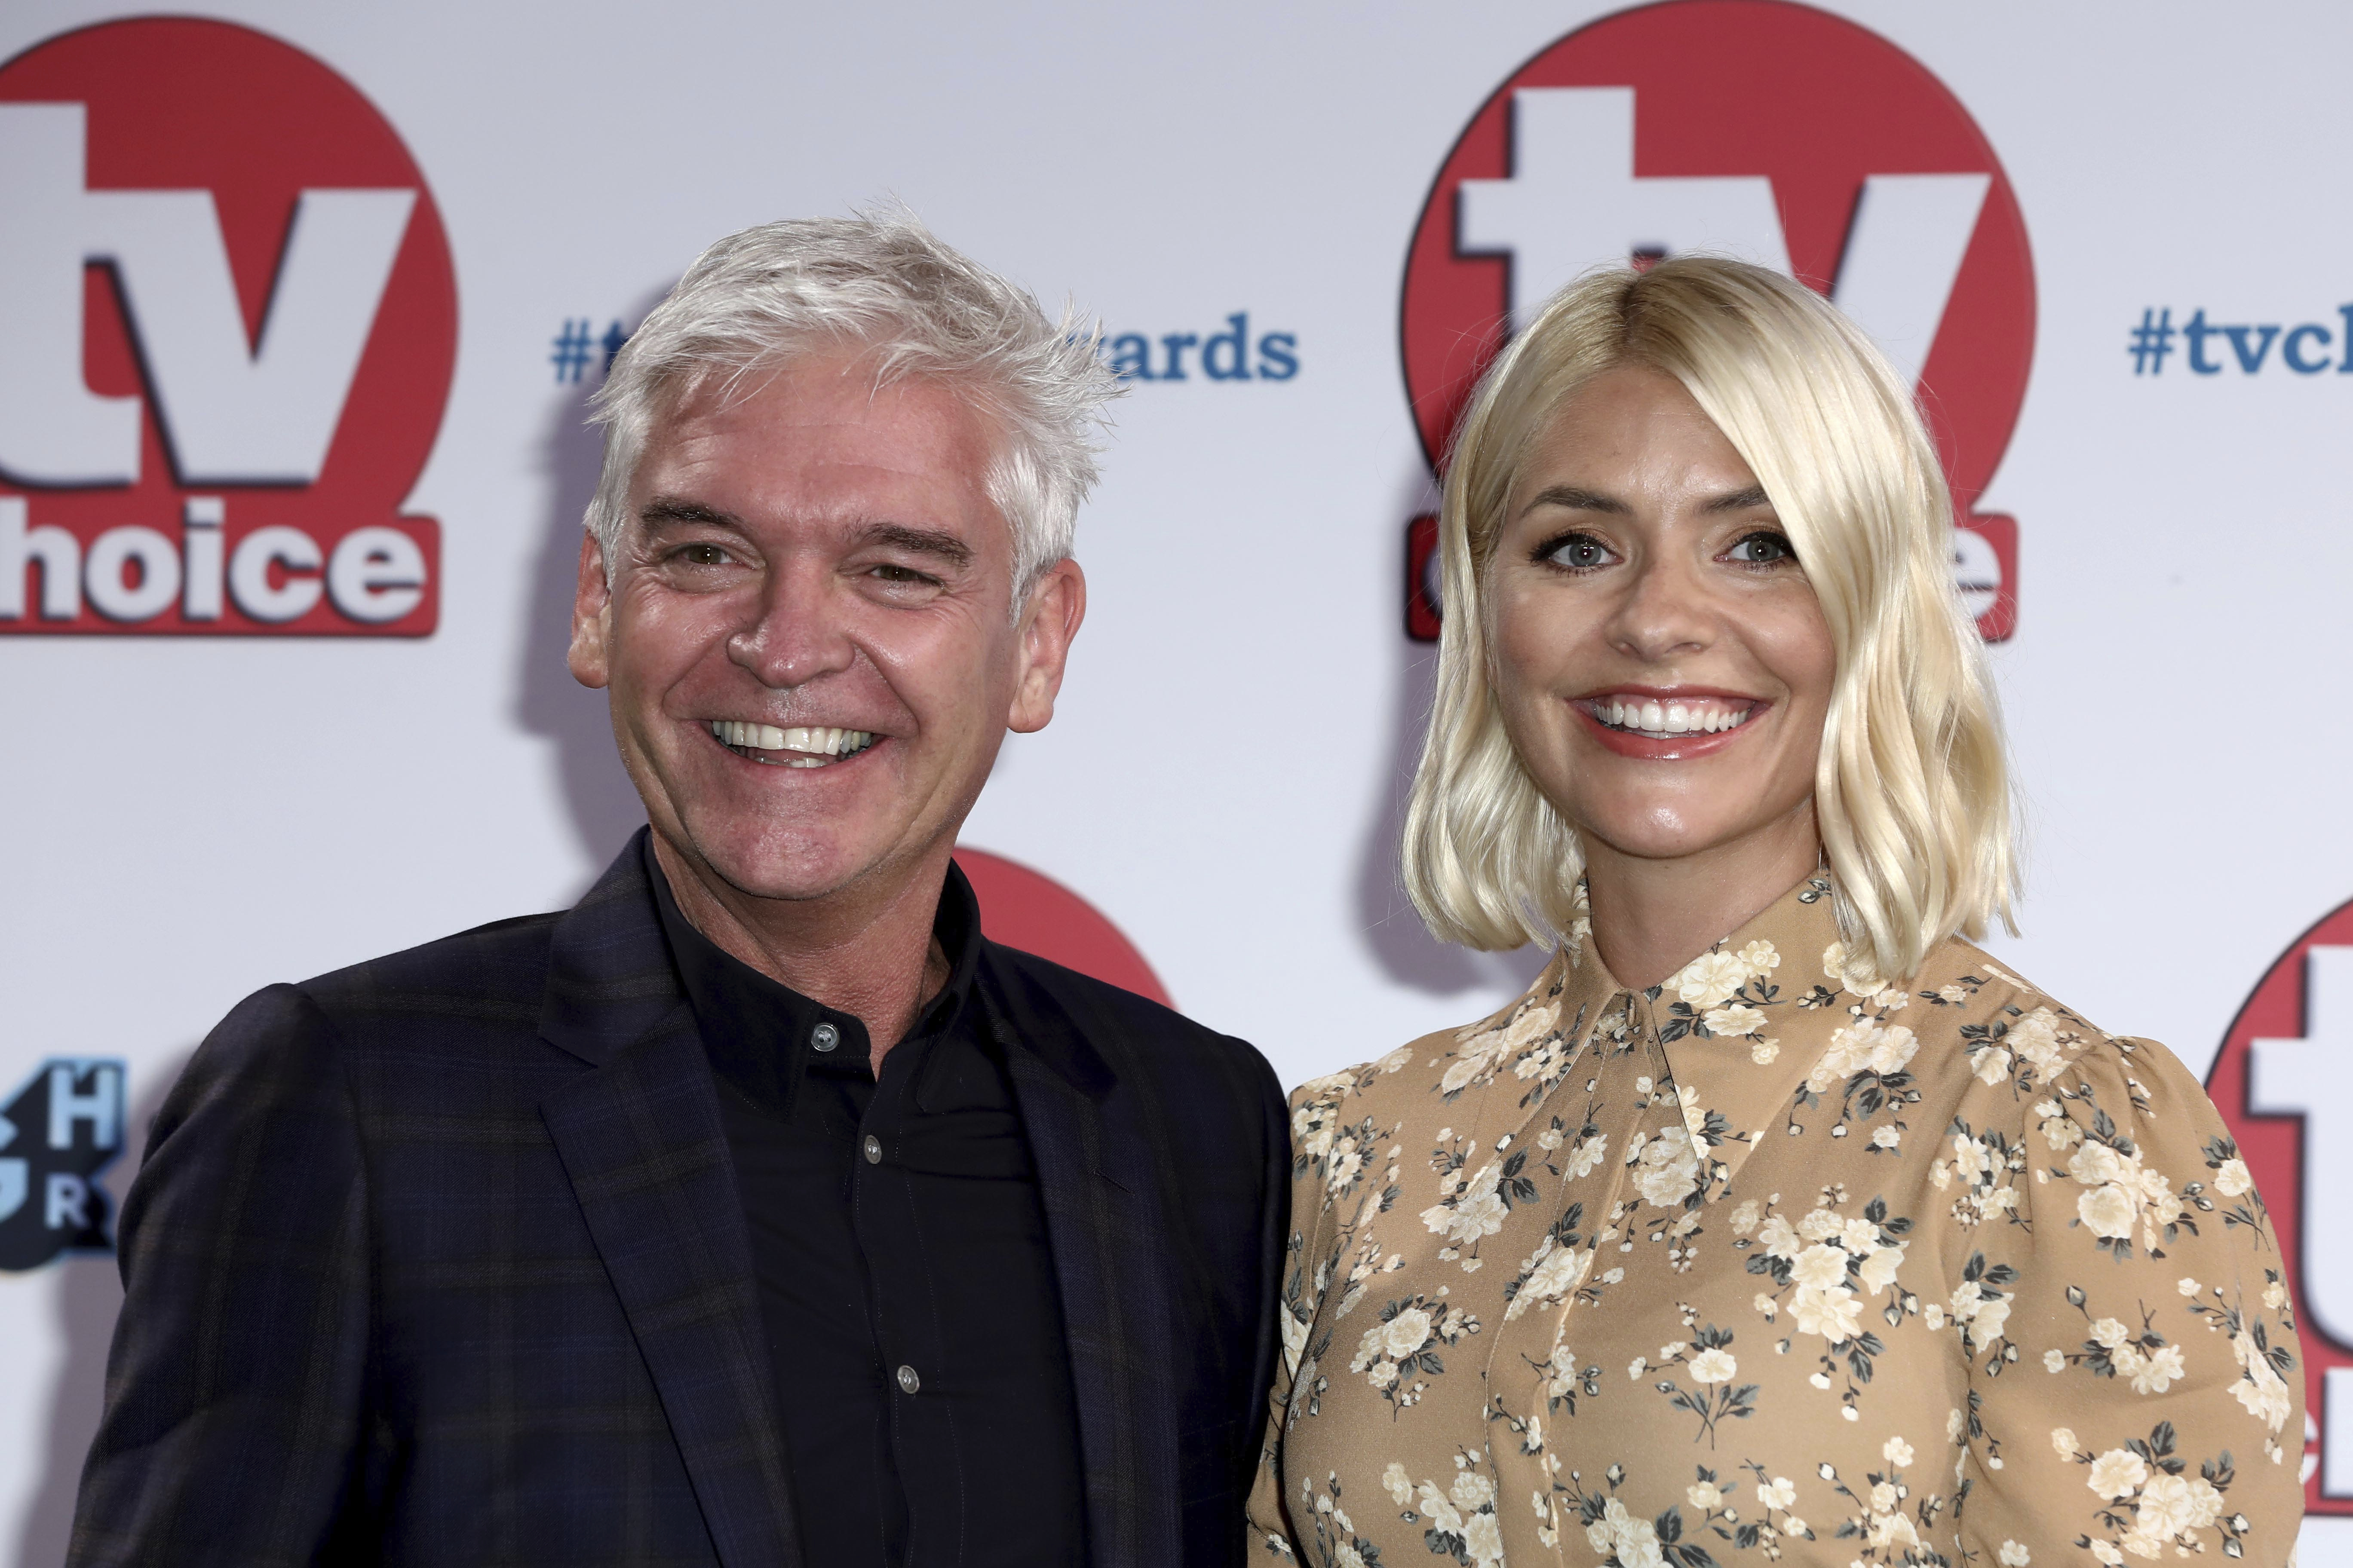 TV Presenters Phillip Schofield and Holly Willoughby pose for photographers on arrival at the TV Choice Awards in central London on Monday, Sept. 9, 2019. (Photo by Grant Pollard/Invision/AP)